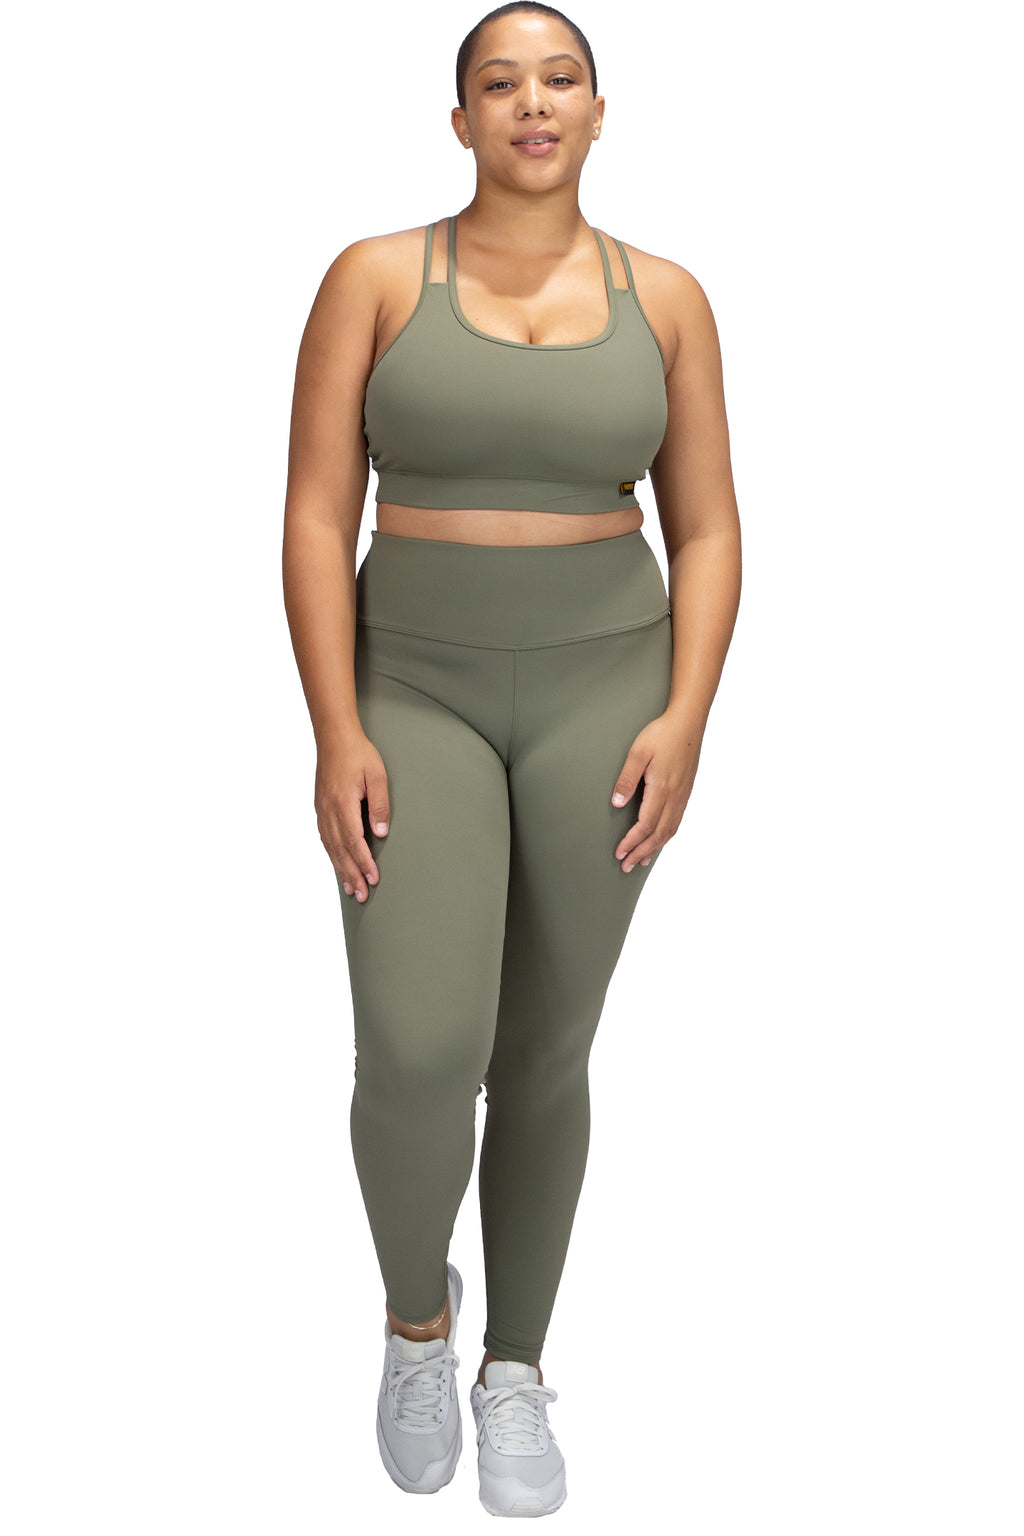 VPOP - Olive Leggings NXT Fabric